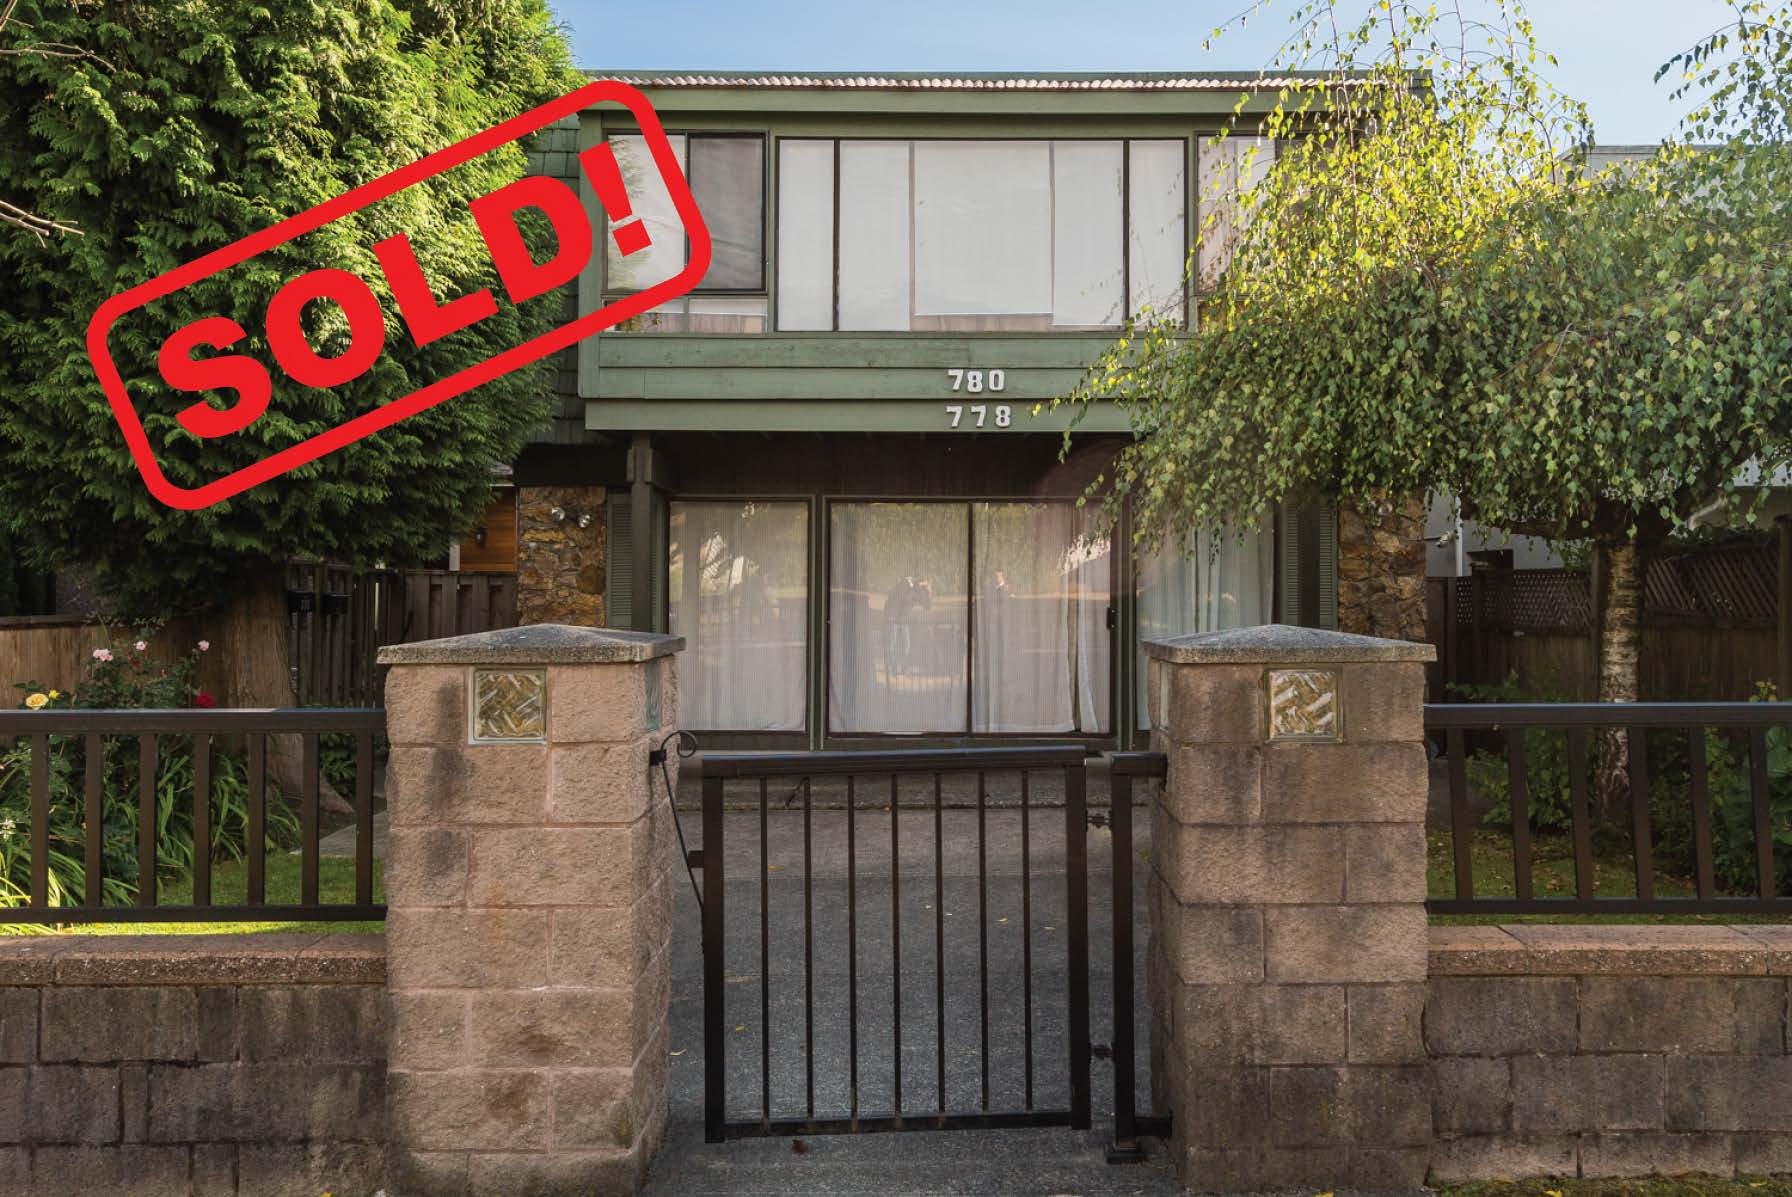 778-780 West 68th Avenue   sold for: $2,050,000  5 Bed | 2 Bath | 1,950 SF